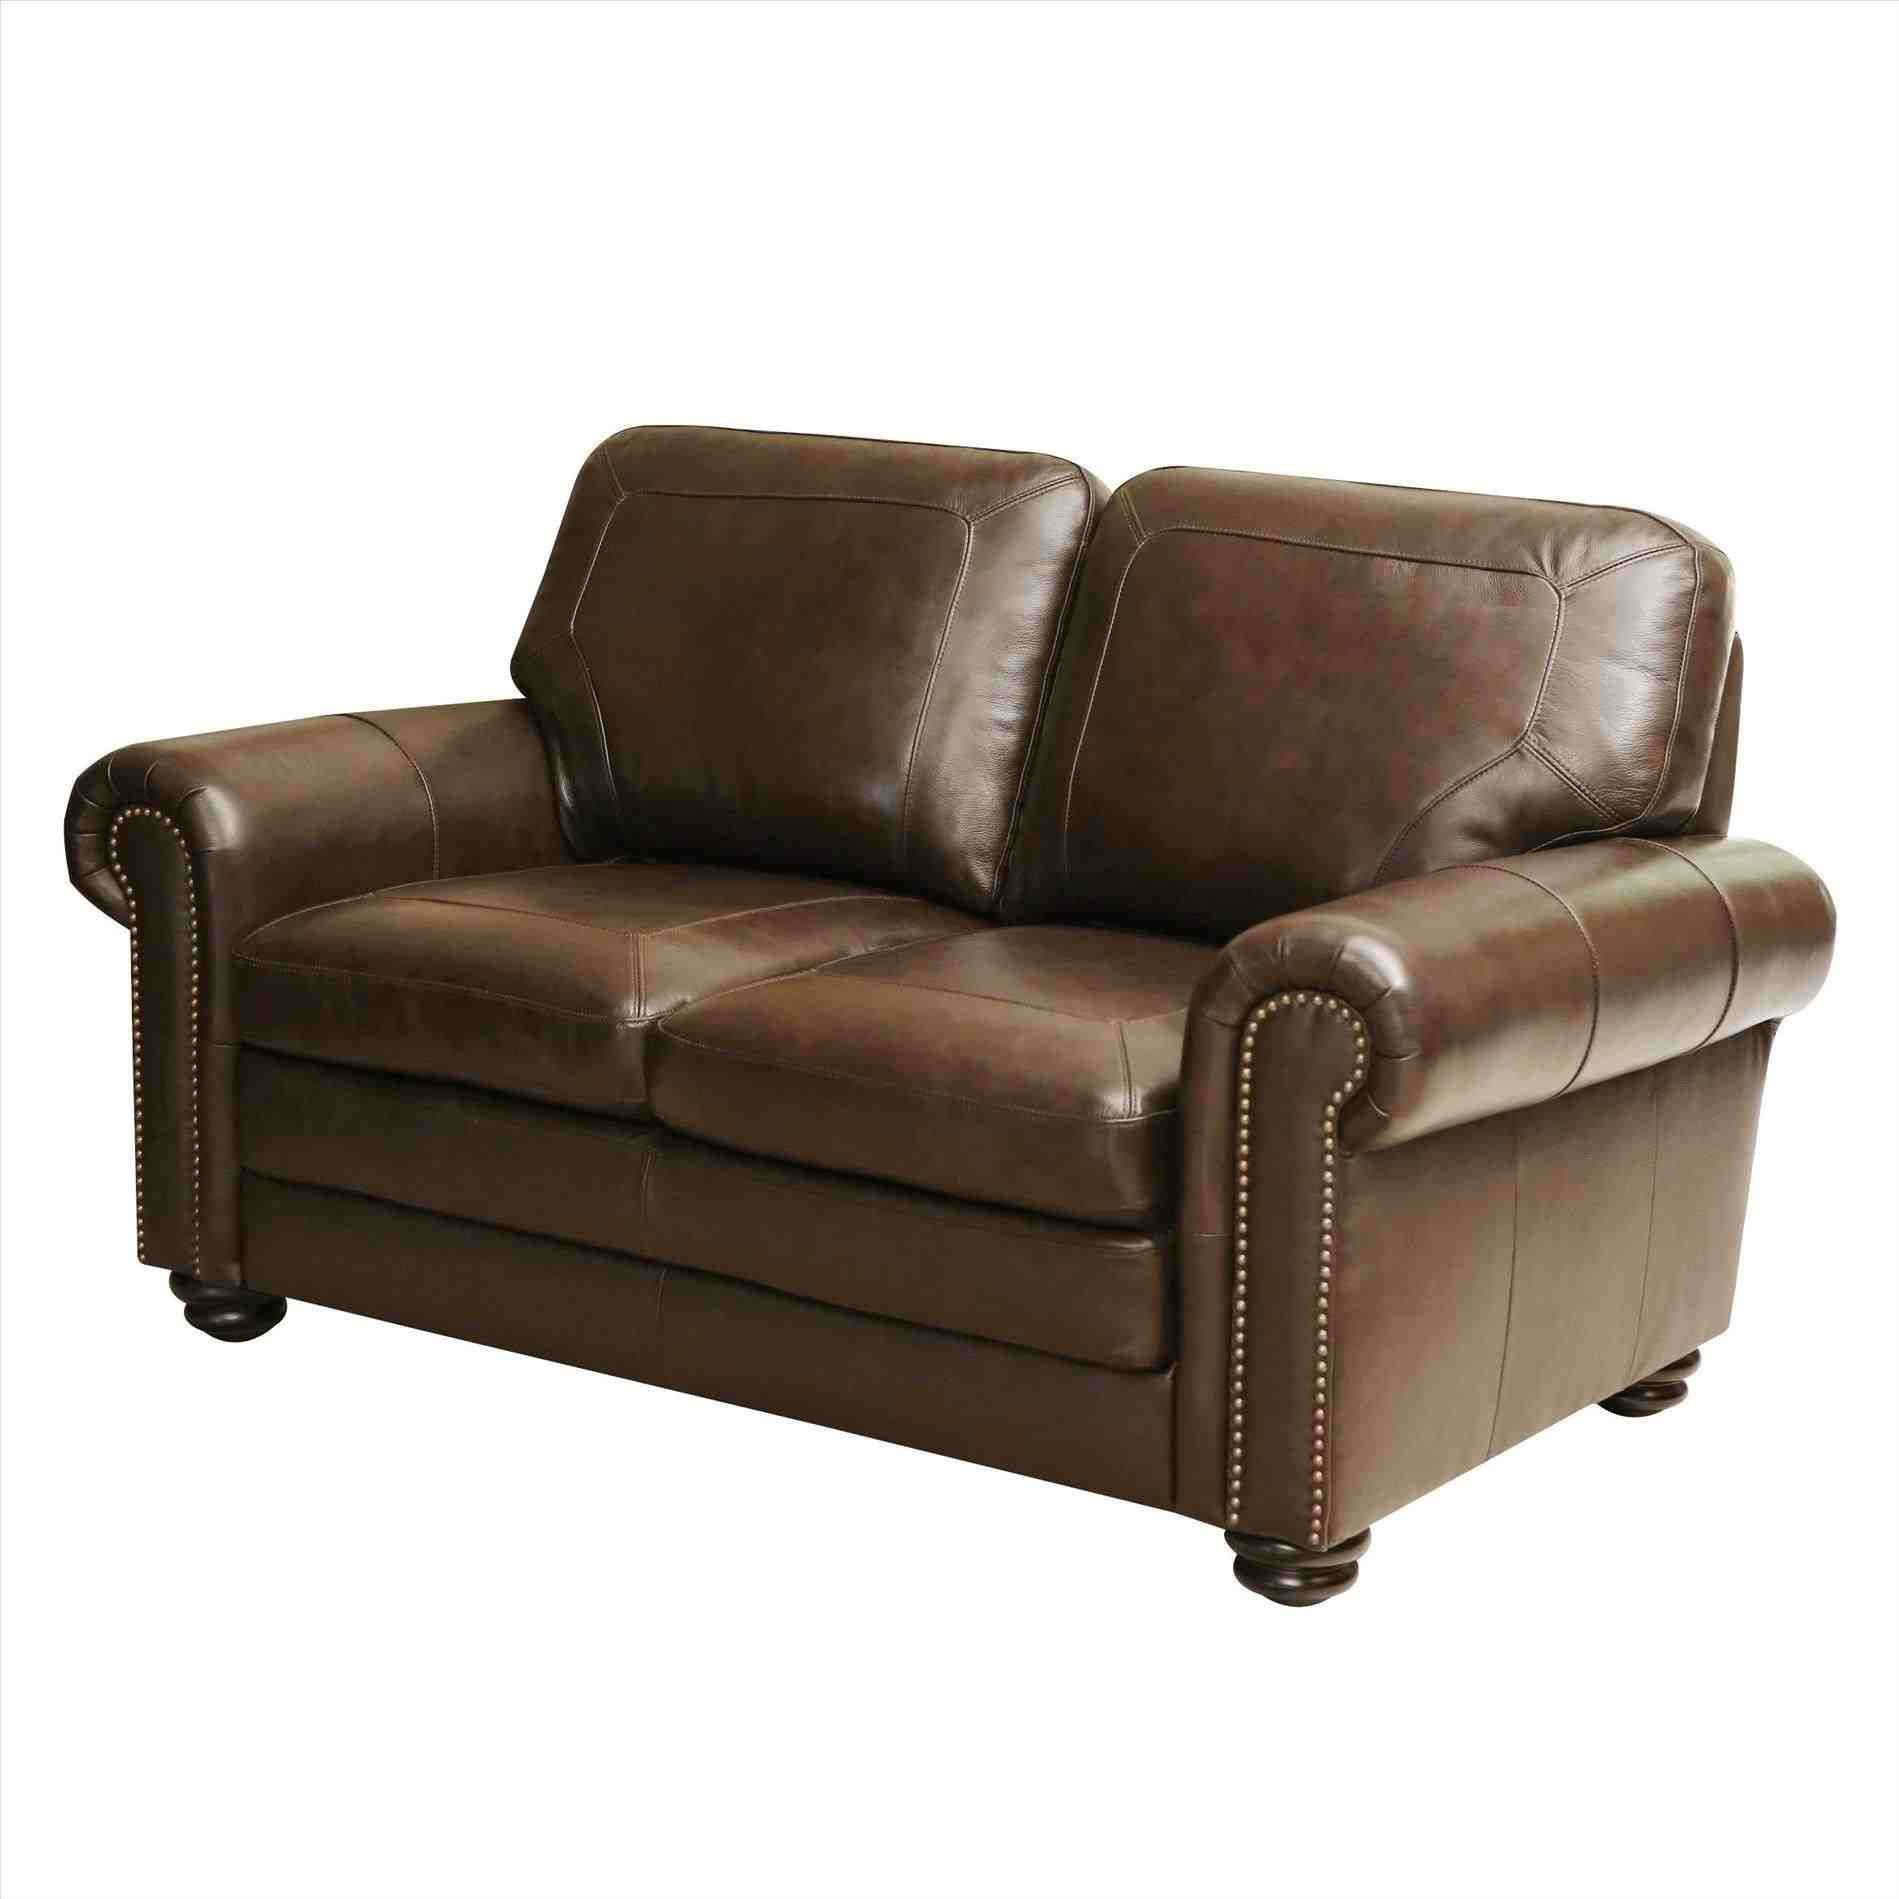 Leather Sofas Bradford 2307597 Idea Italsofa